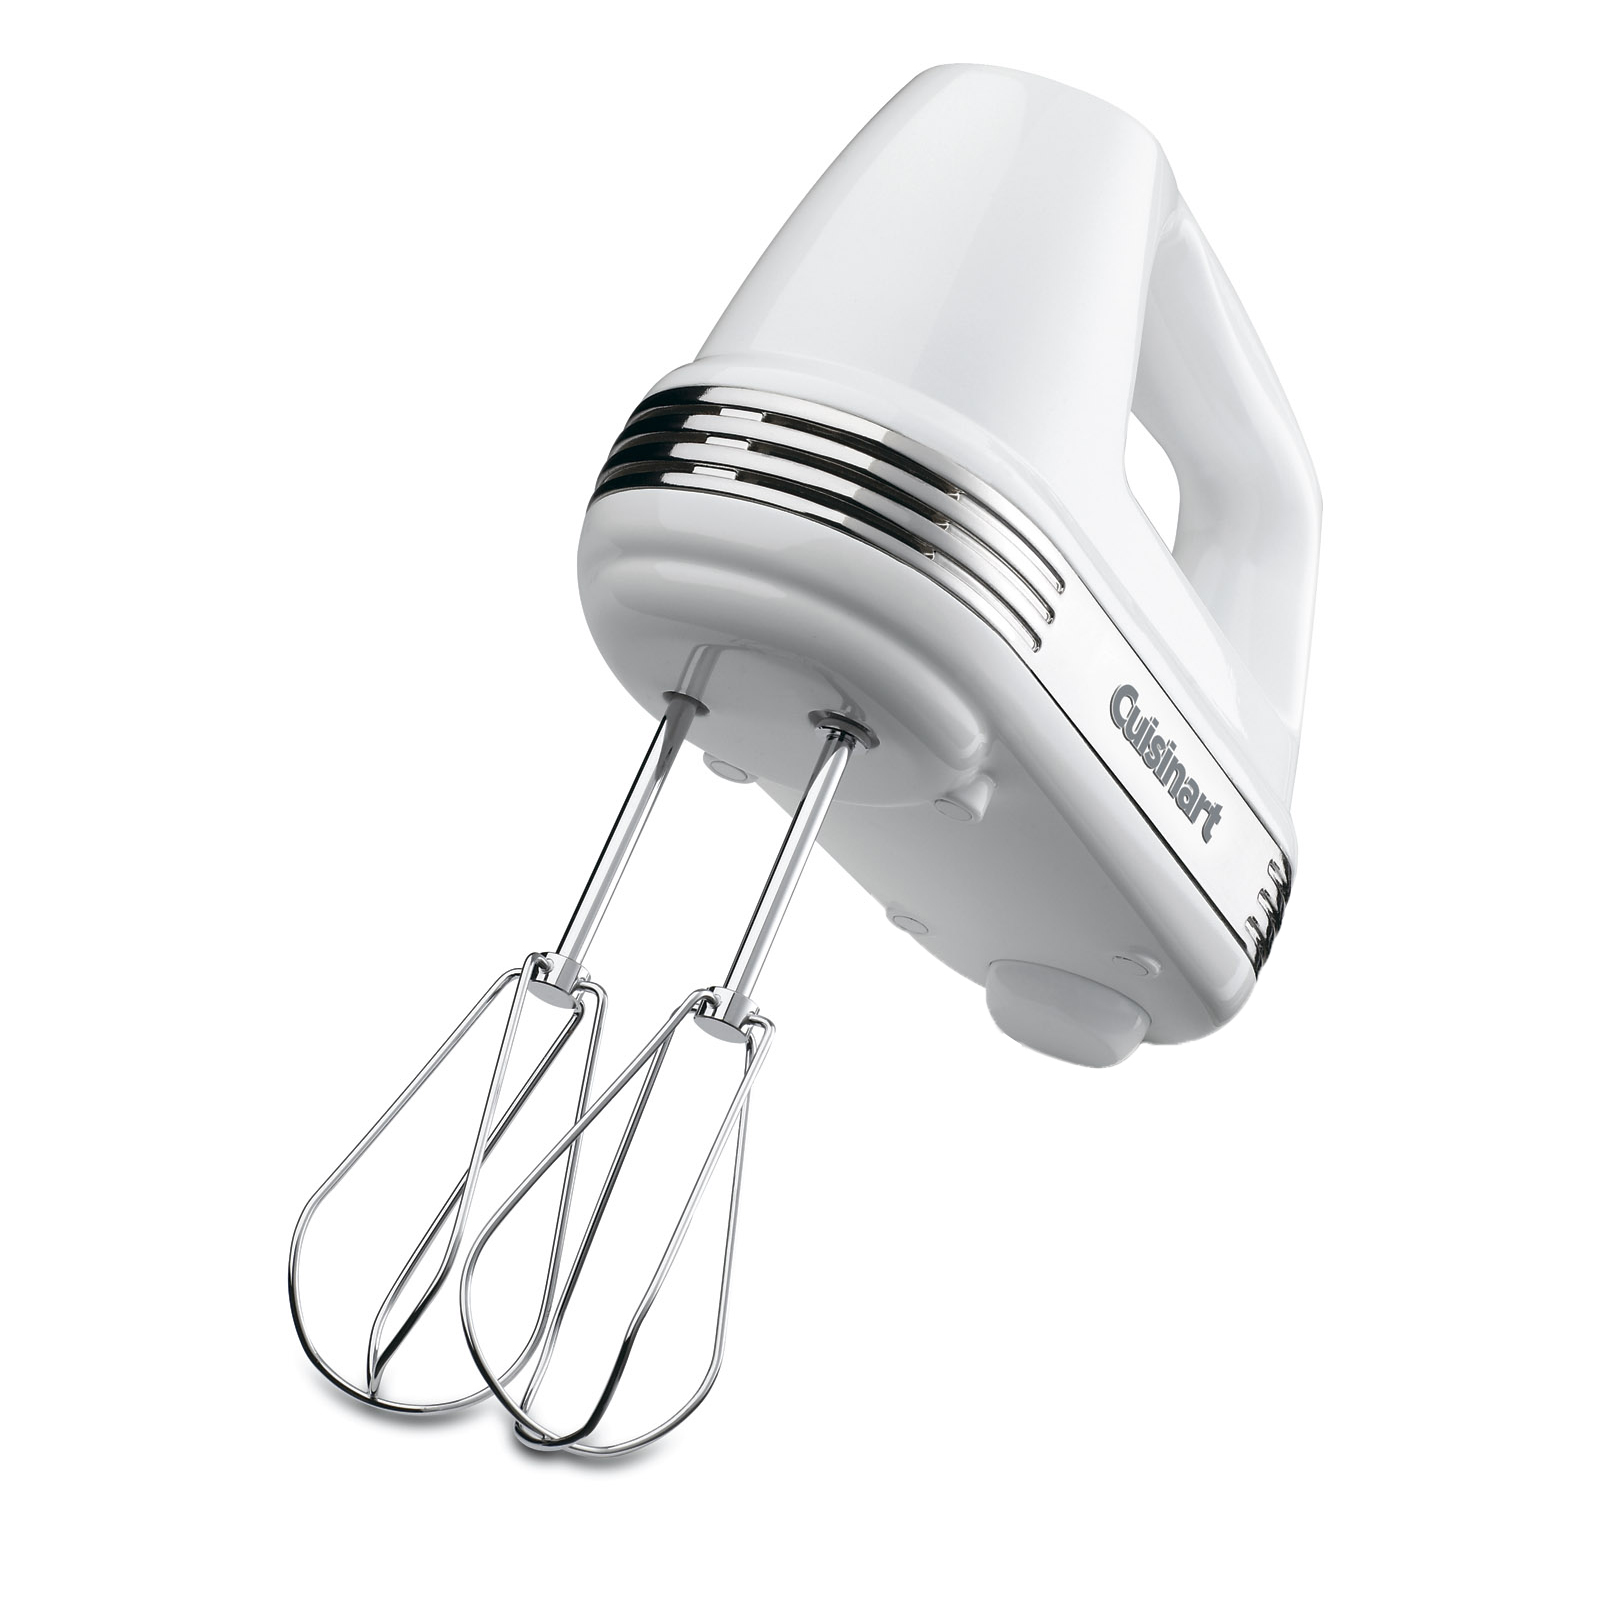 Cuisinart Power Advantage 5-Speed 220-Watt Hand Mixer, White